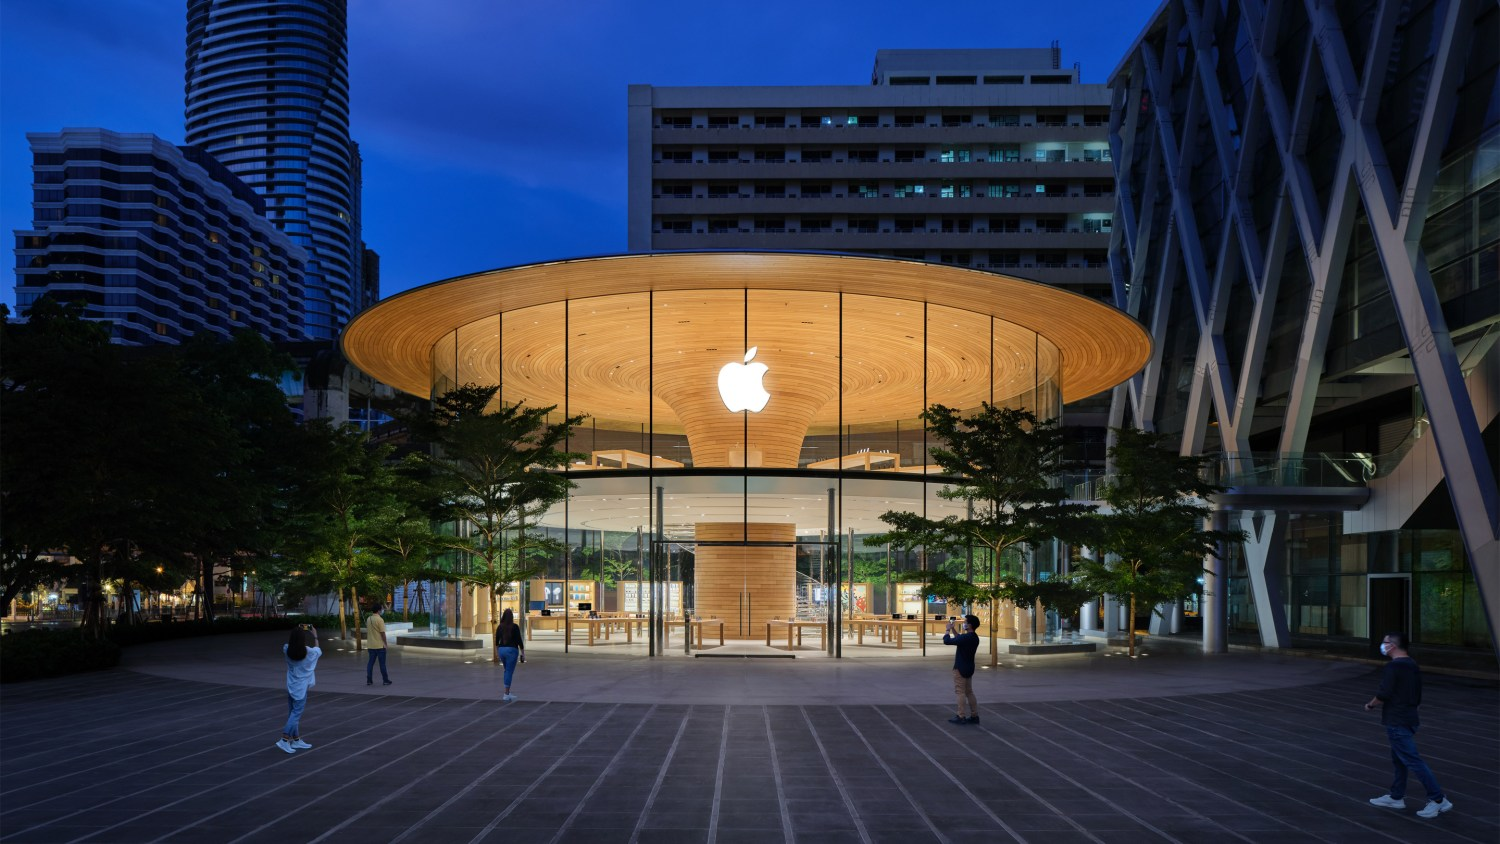 Apple's latest retail store in Bangkok